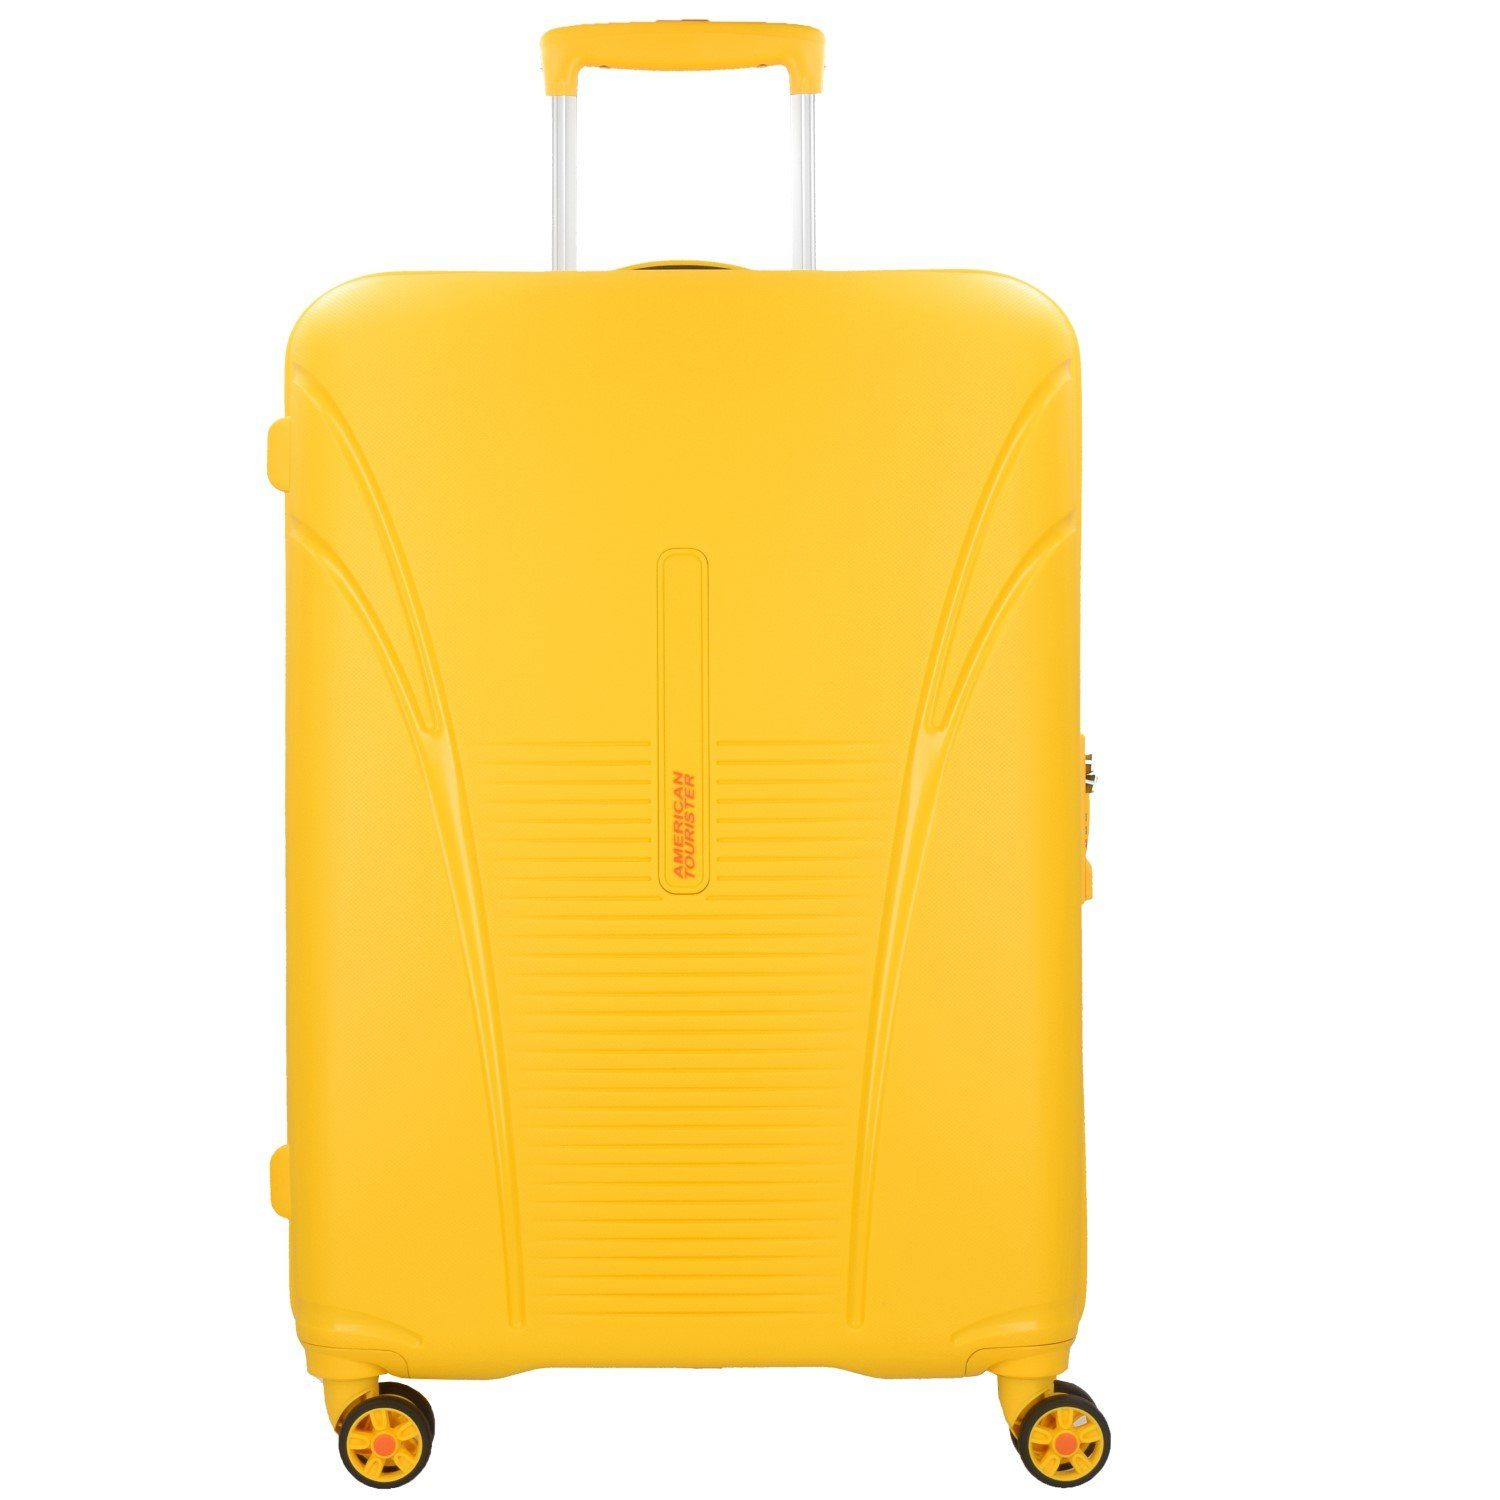 American Tourister Skytracer Spinner 4-Rollen Trolley 68 cm